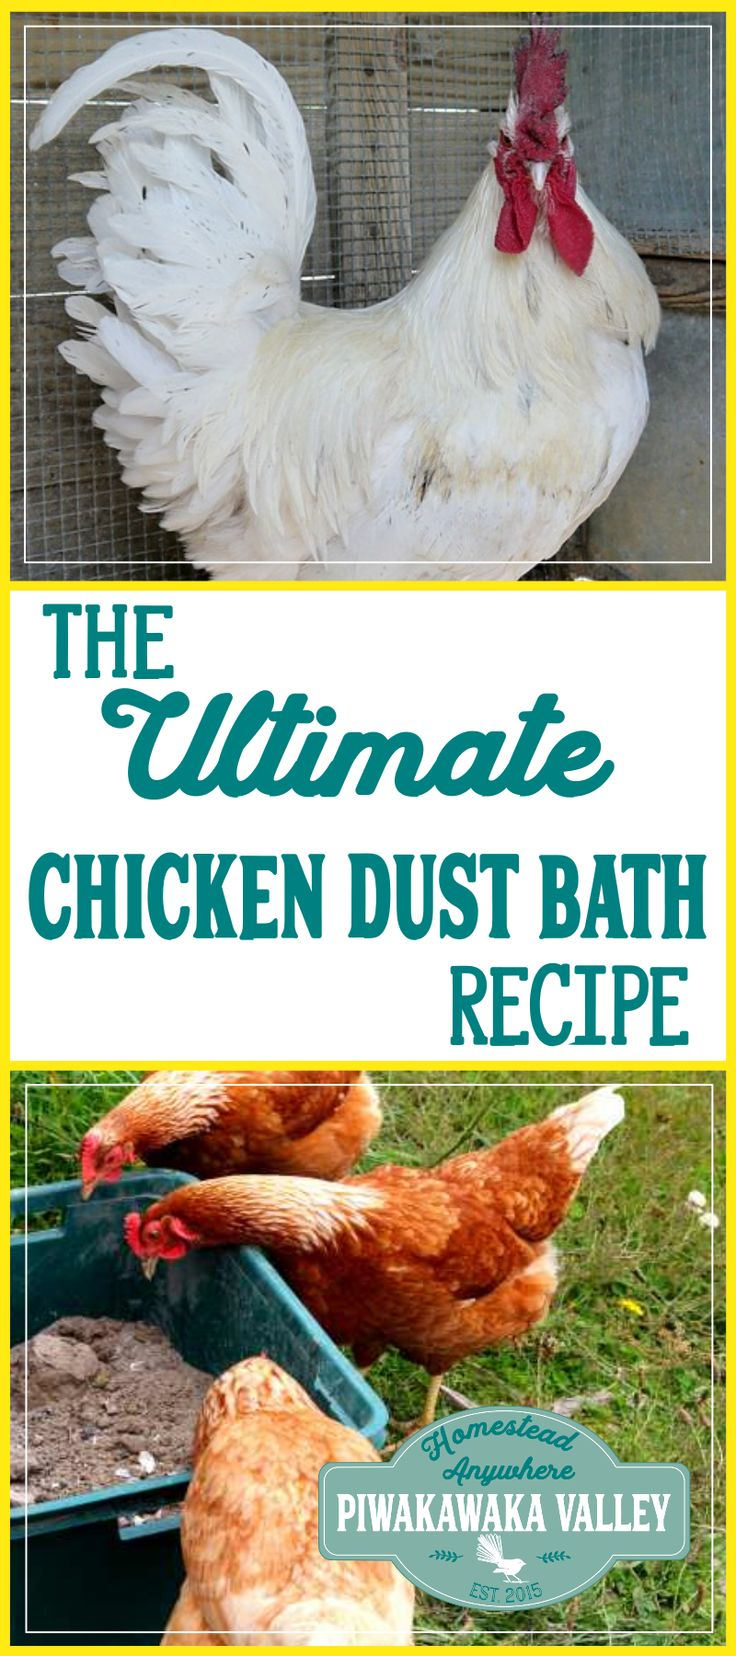 762 Best Chickens Images On Pinterest Chicken Coops Backyard Chickens And Chicken Roost